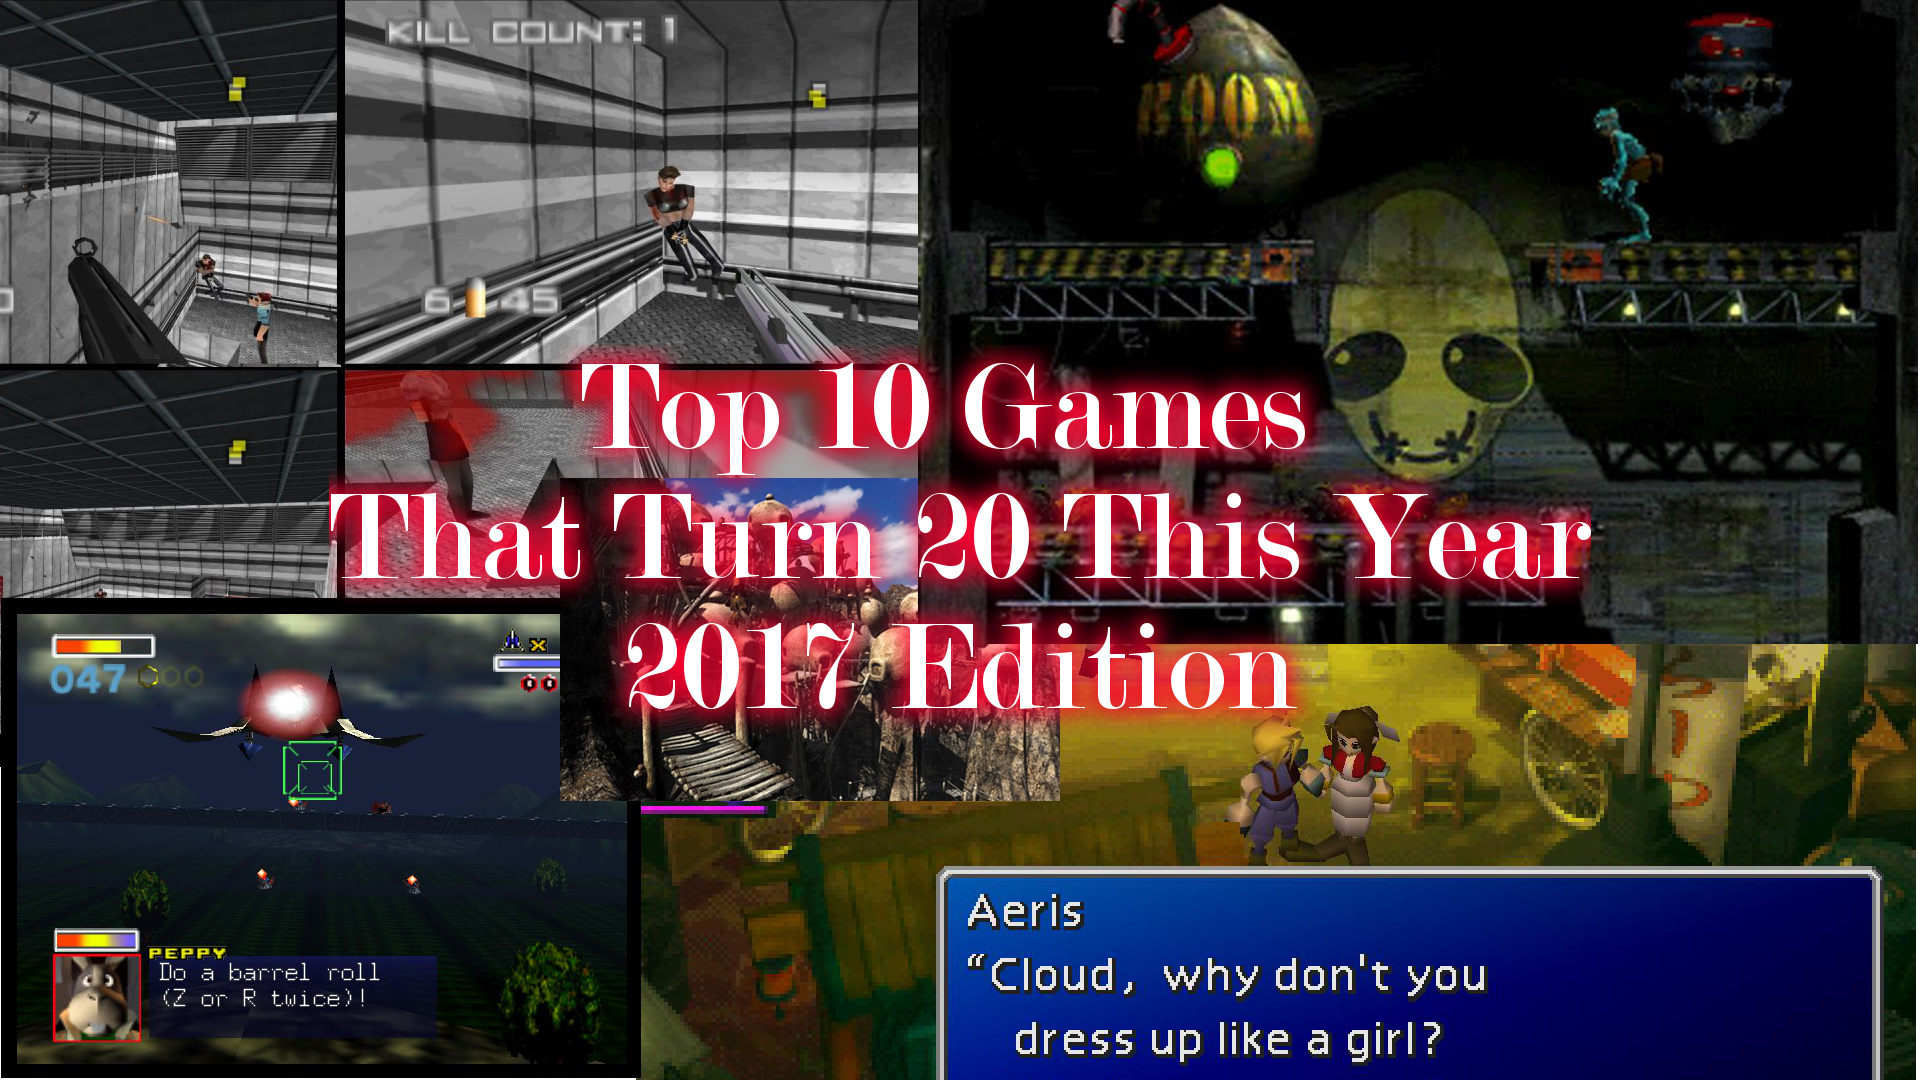 Top 10 games that turn 20 this year.